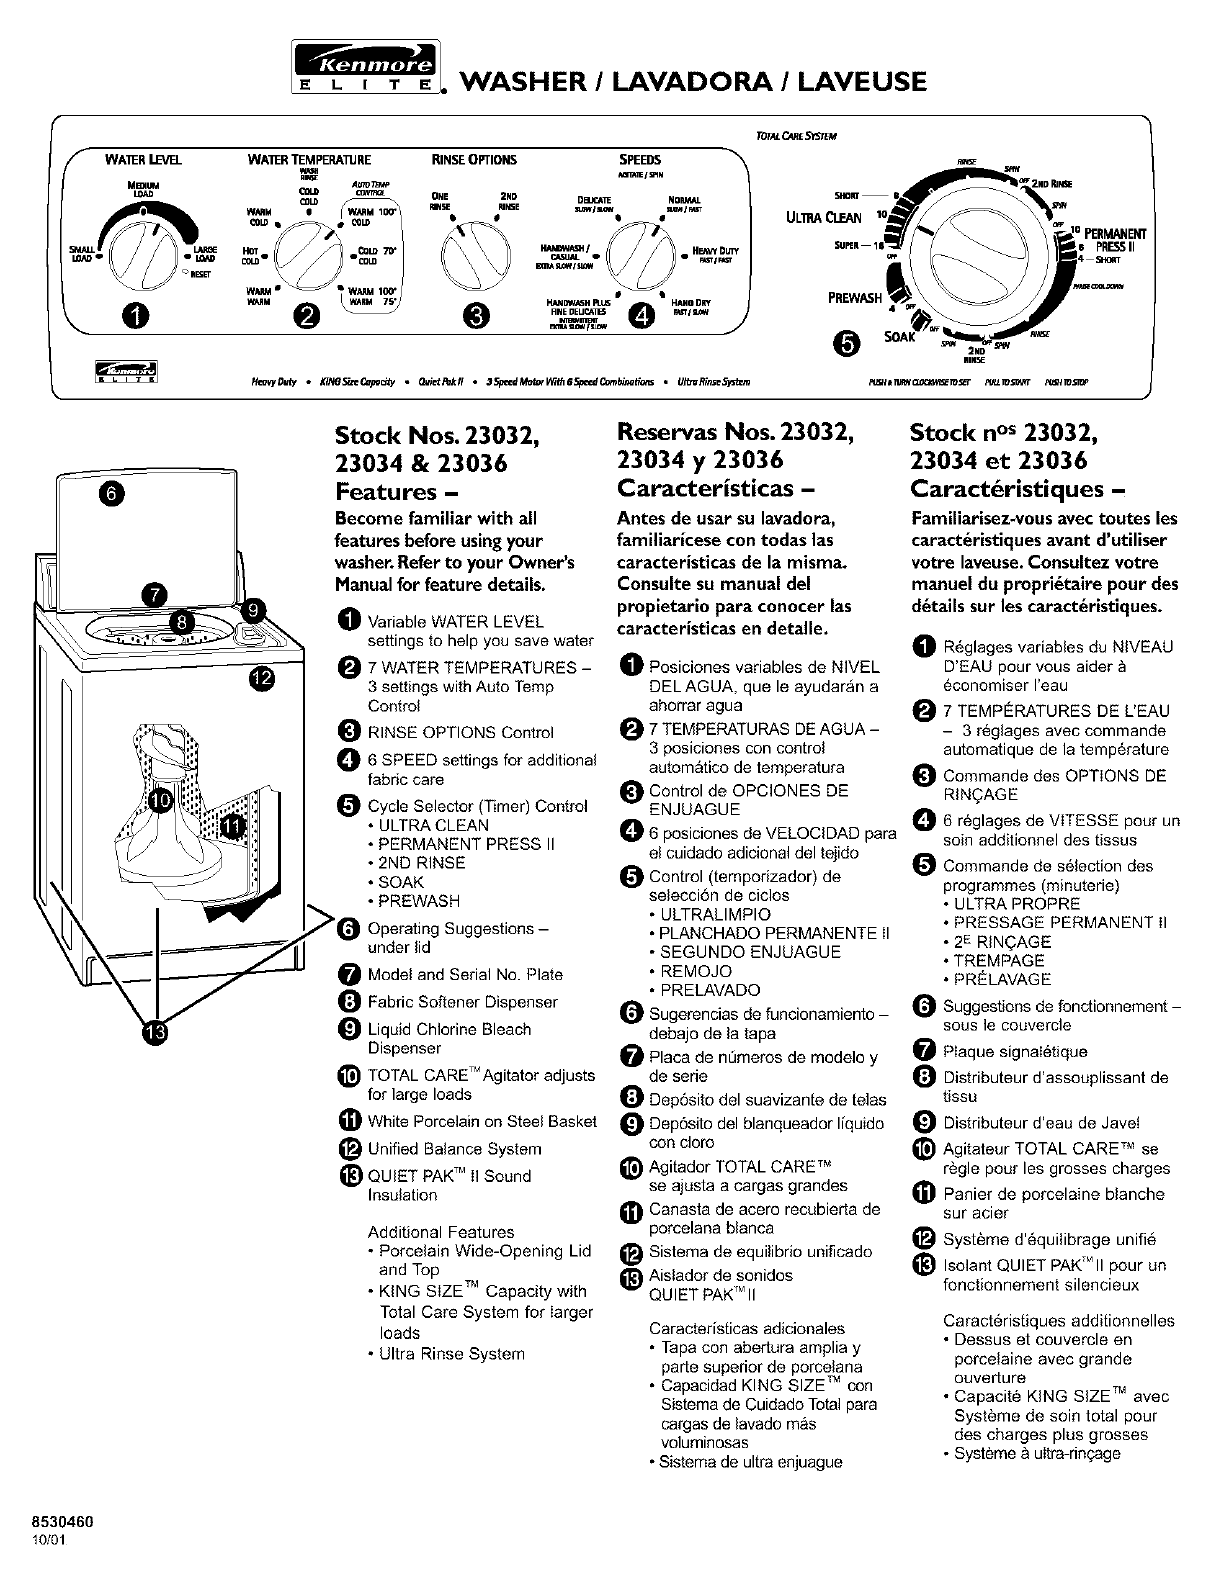 Kenmore Elite Washer Parts Manual Guide